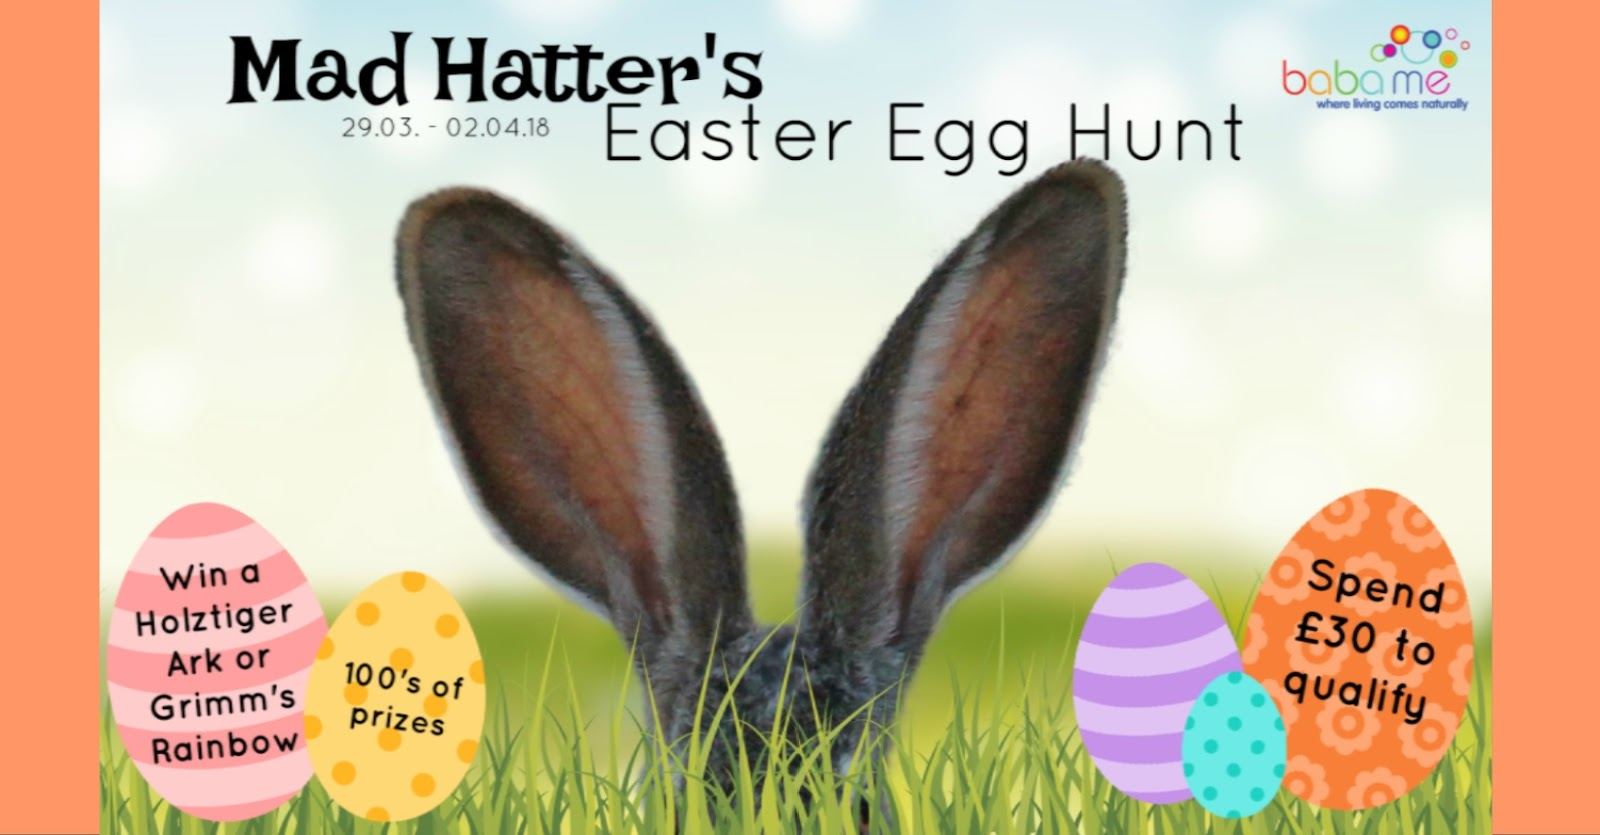 Alternative easter egg hunt baba me alternative easter egg hunt hi its badfairy here id like to fill you in on all the details of our easter weekend free gift promotion negle Choice Image